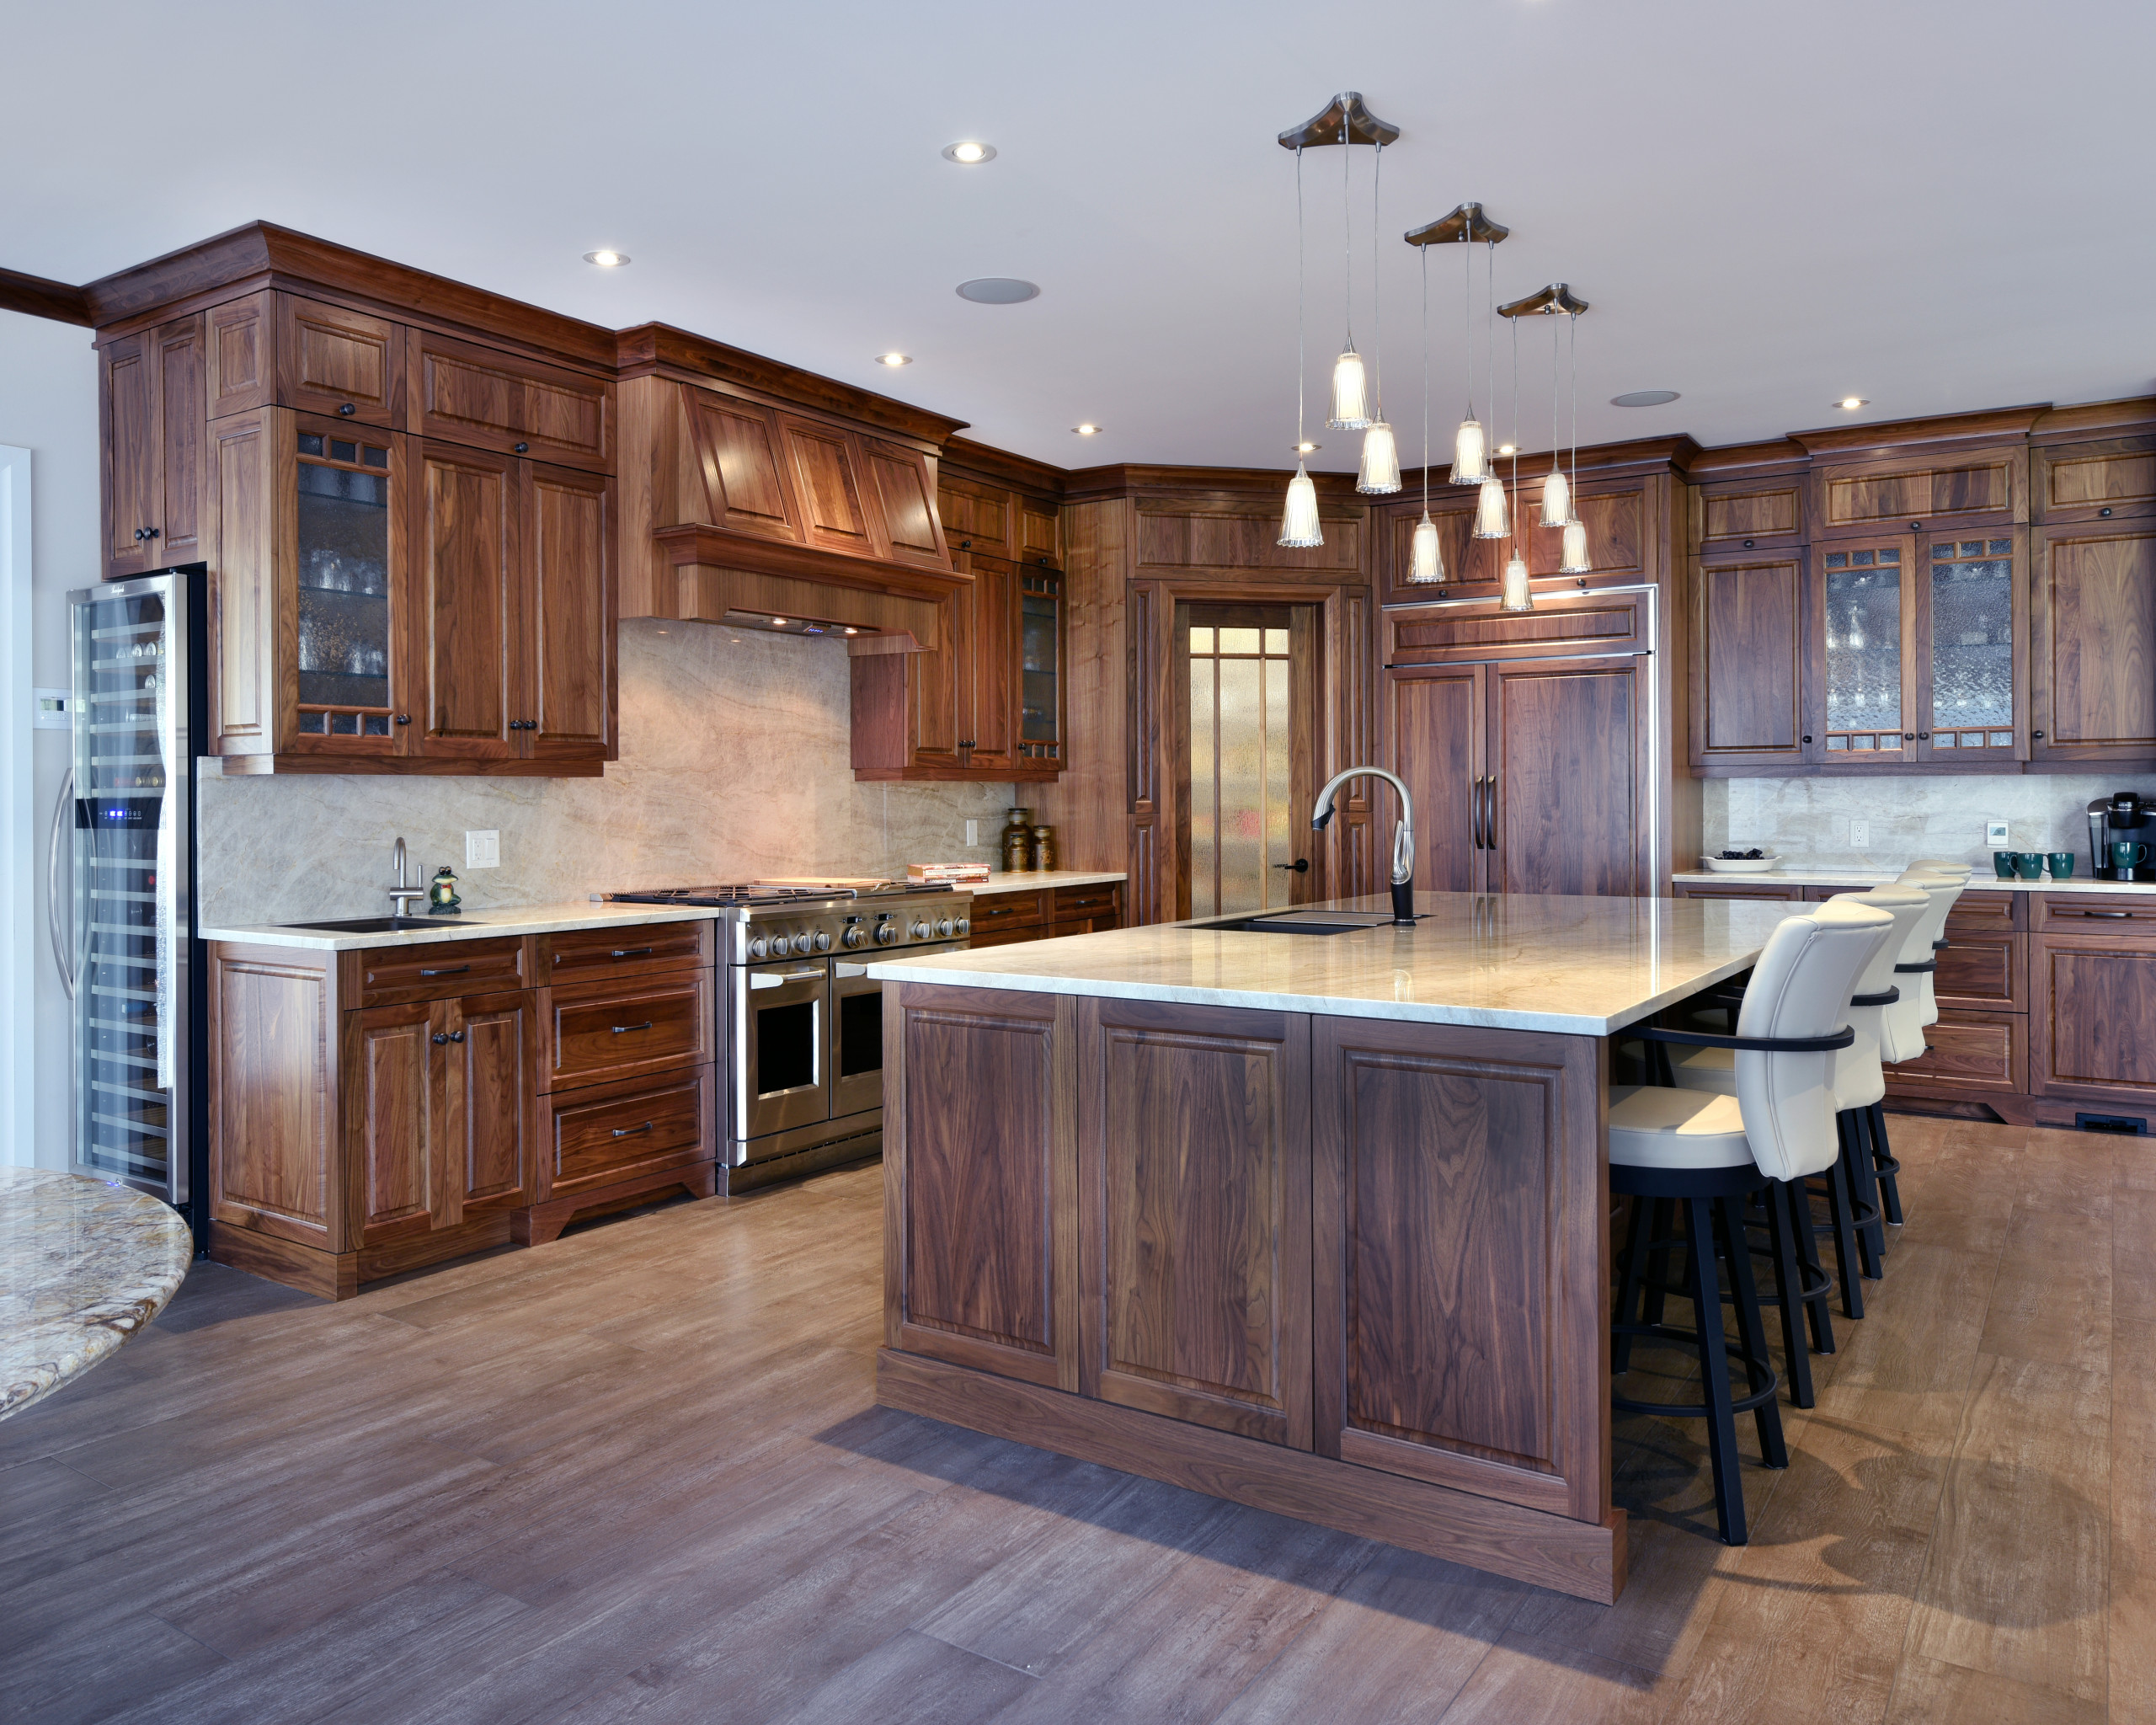 A traditional kitchen design with stained cabinets.